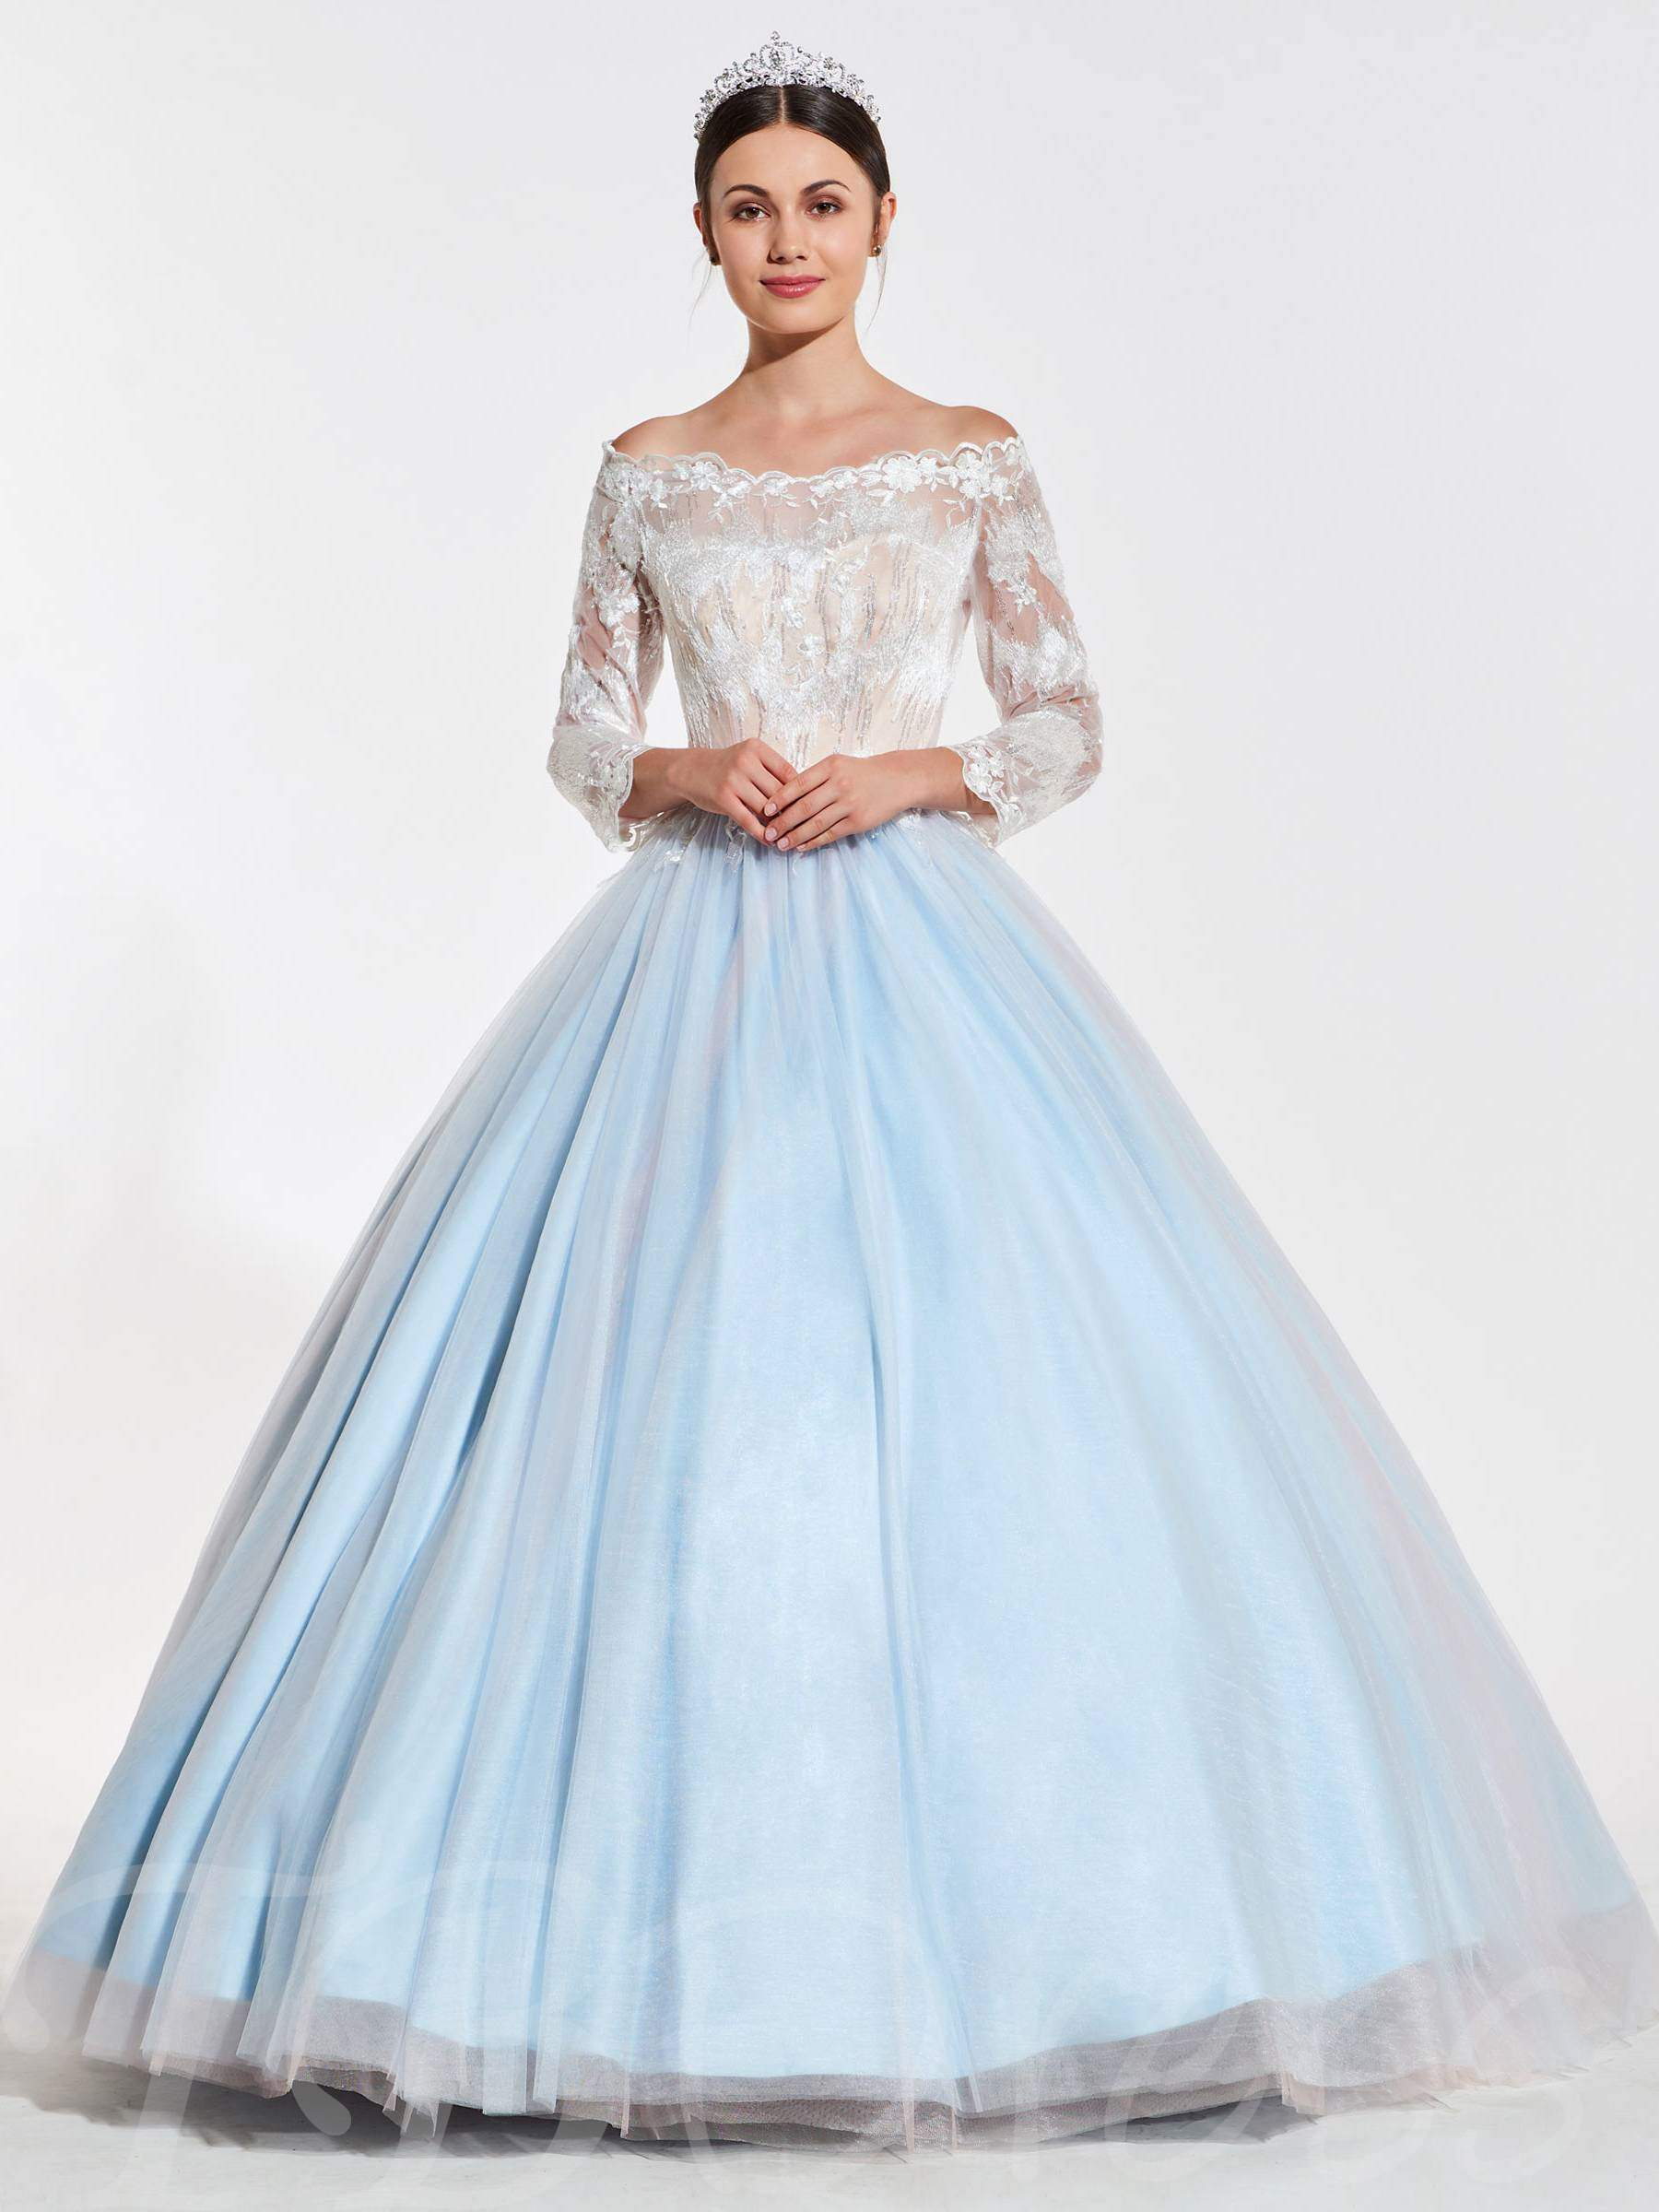 Buy Off-the-Shoulder Beaded Lace Quinceanera Dress, Spring,Summer,Fall,Winter, 13402710 for $190.99 in TBDress store